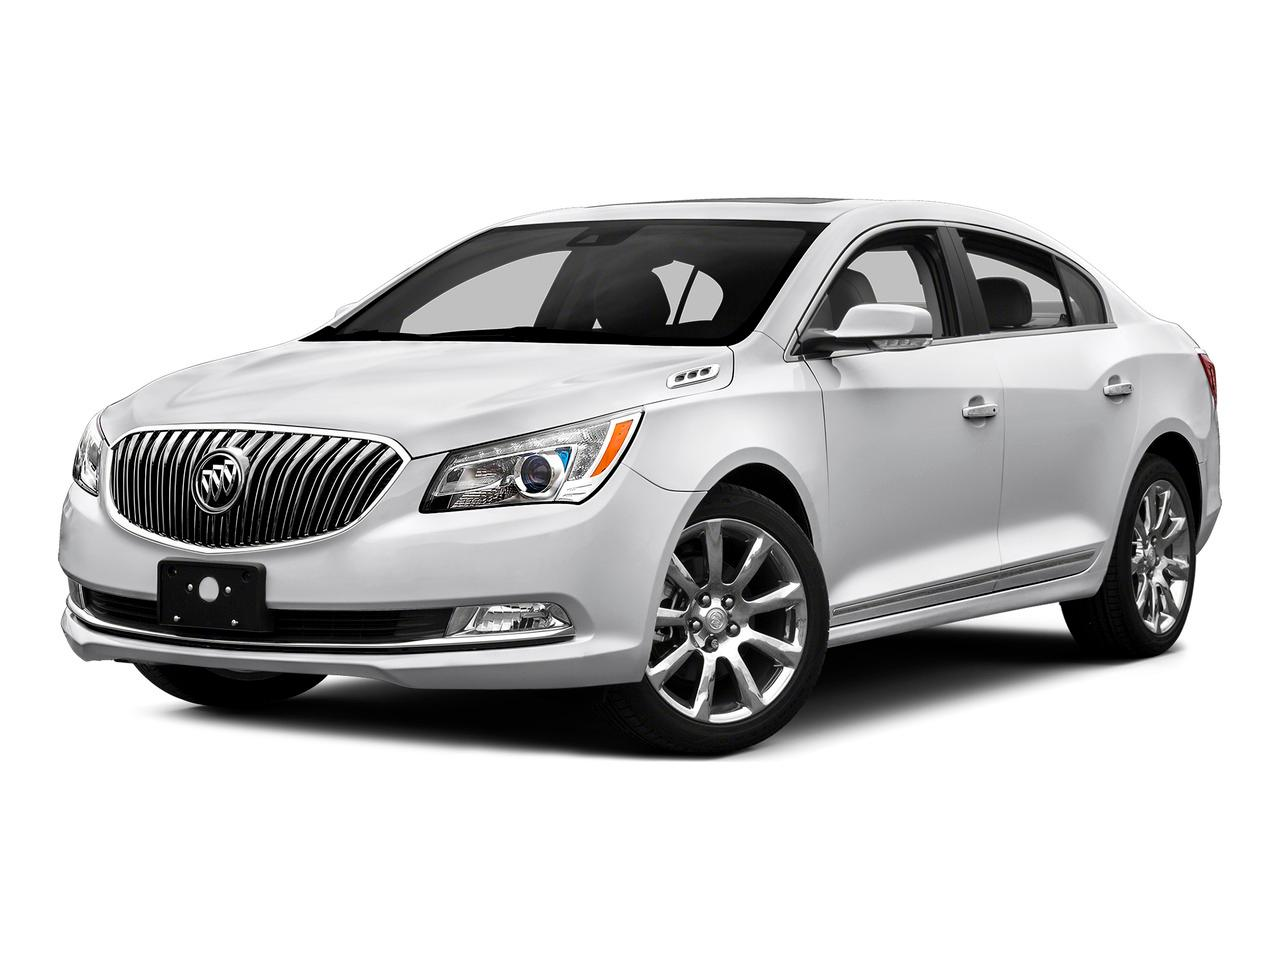 2016 Buick LaCrosse Vehicle Photo in Owensboro, KY 42303